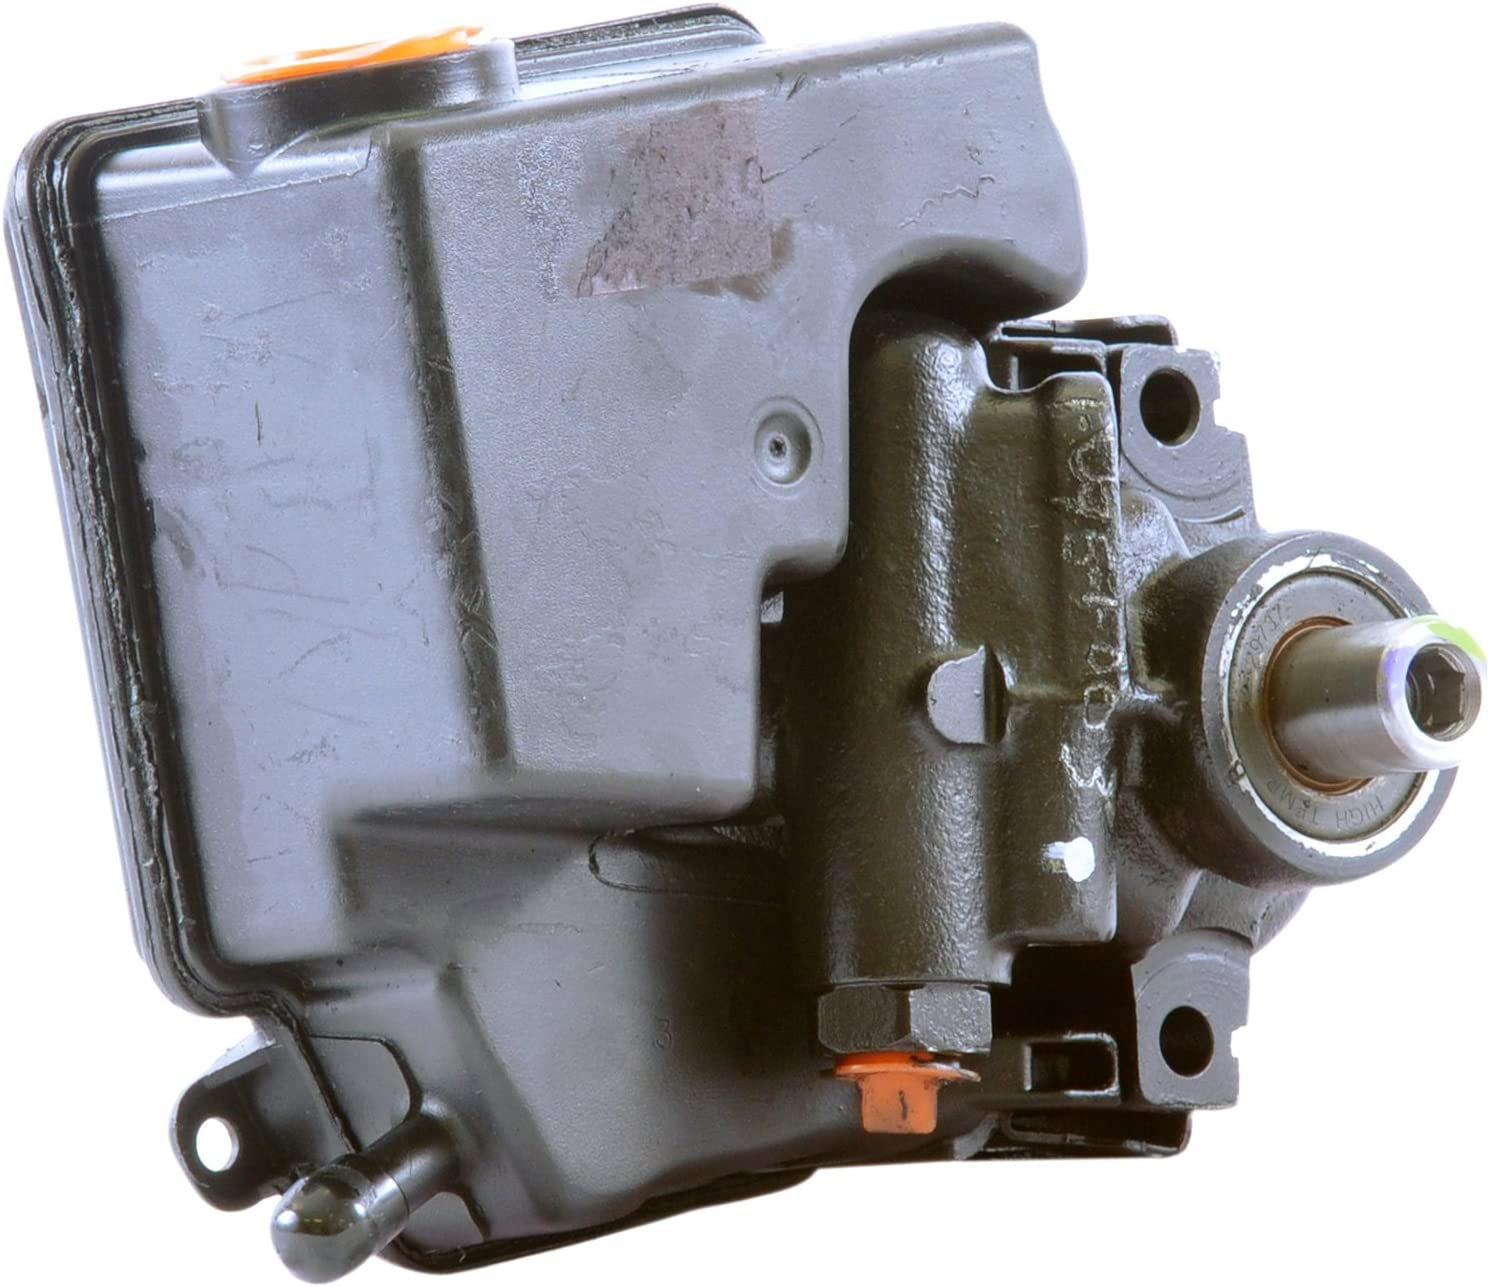 Remanufactured ACDelco 36P1489 Professional Power Steering Pump